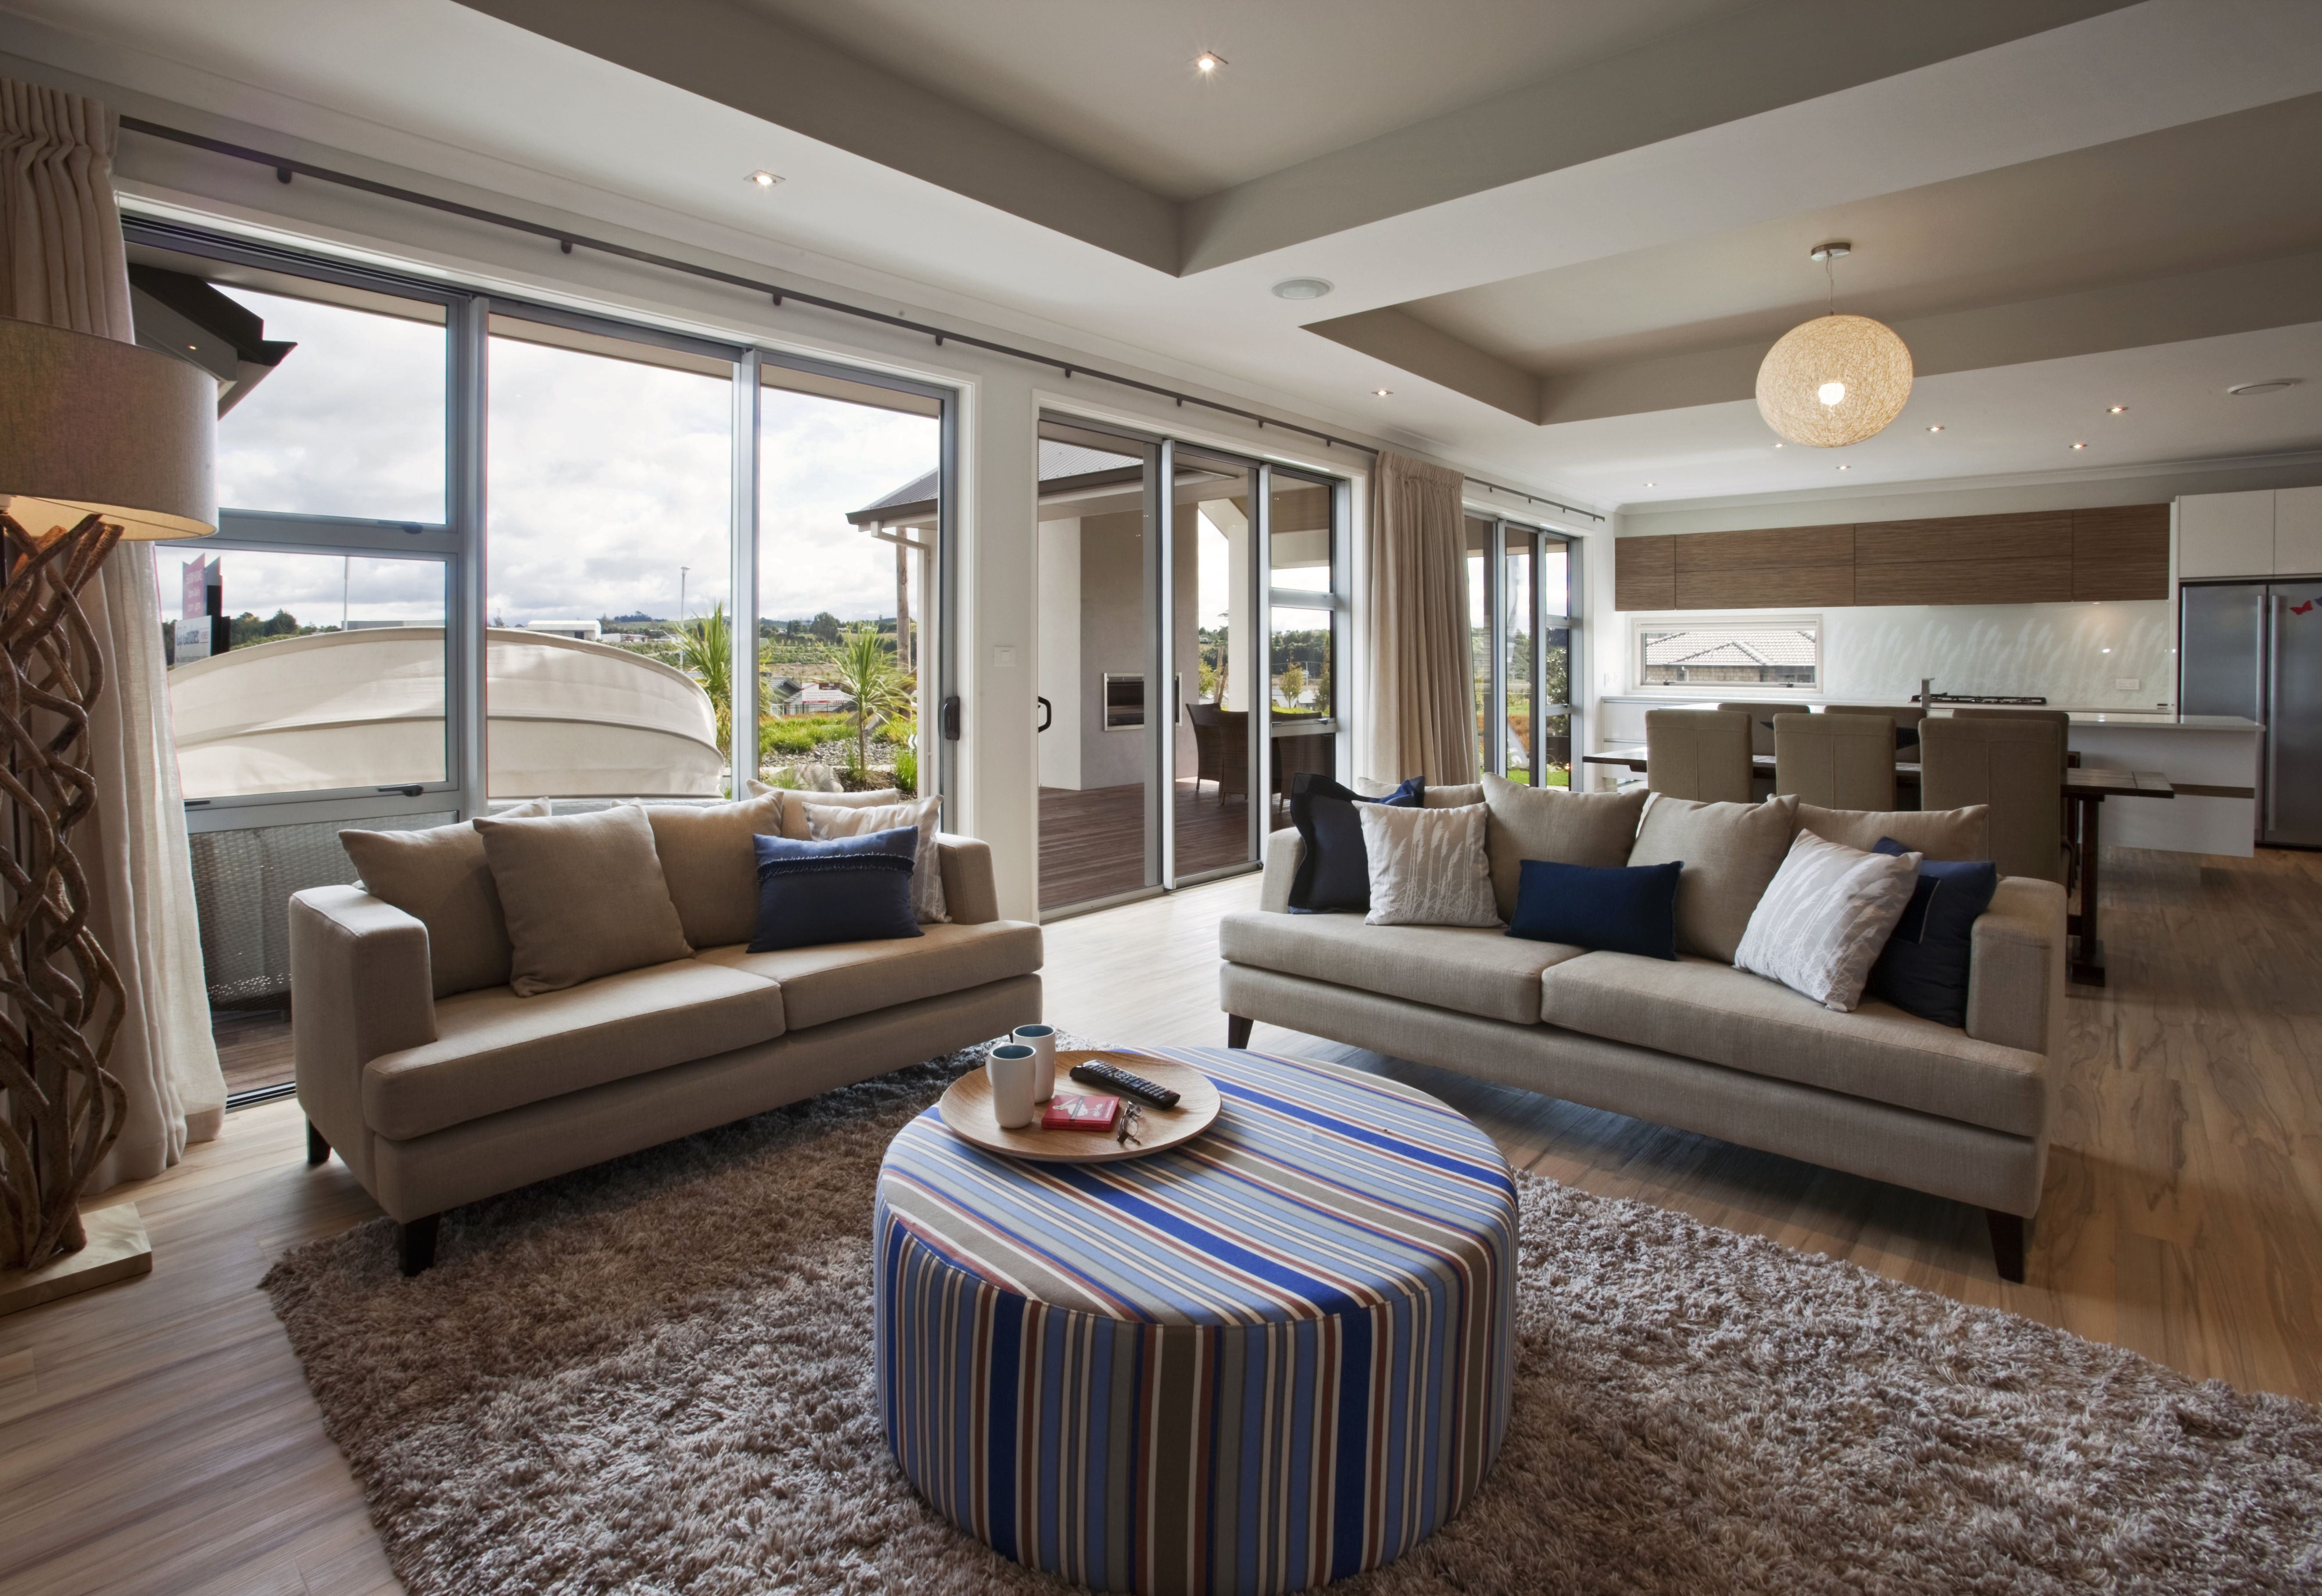 Indoor outdoor flow. With raised inset ceilings giving an